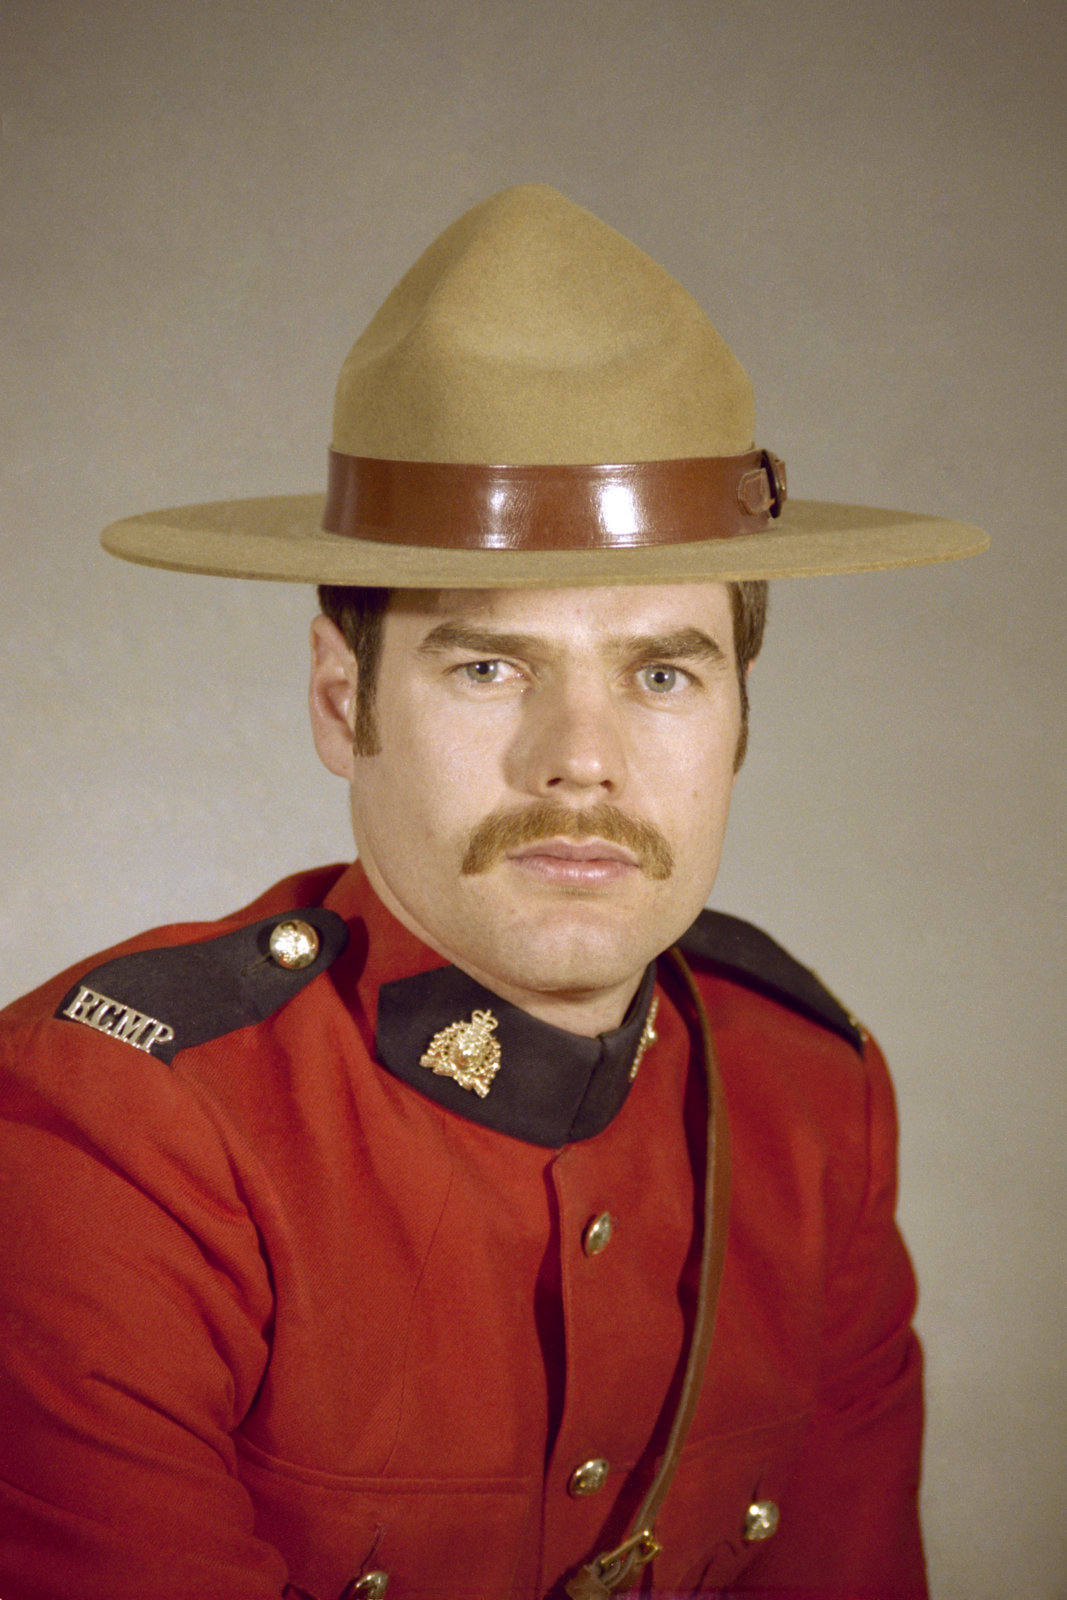 Constable Richard John Sedgwick– © Her Majesty the Queen in Right of Canada as represented by the Royal Canadian Mounted Police